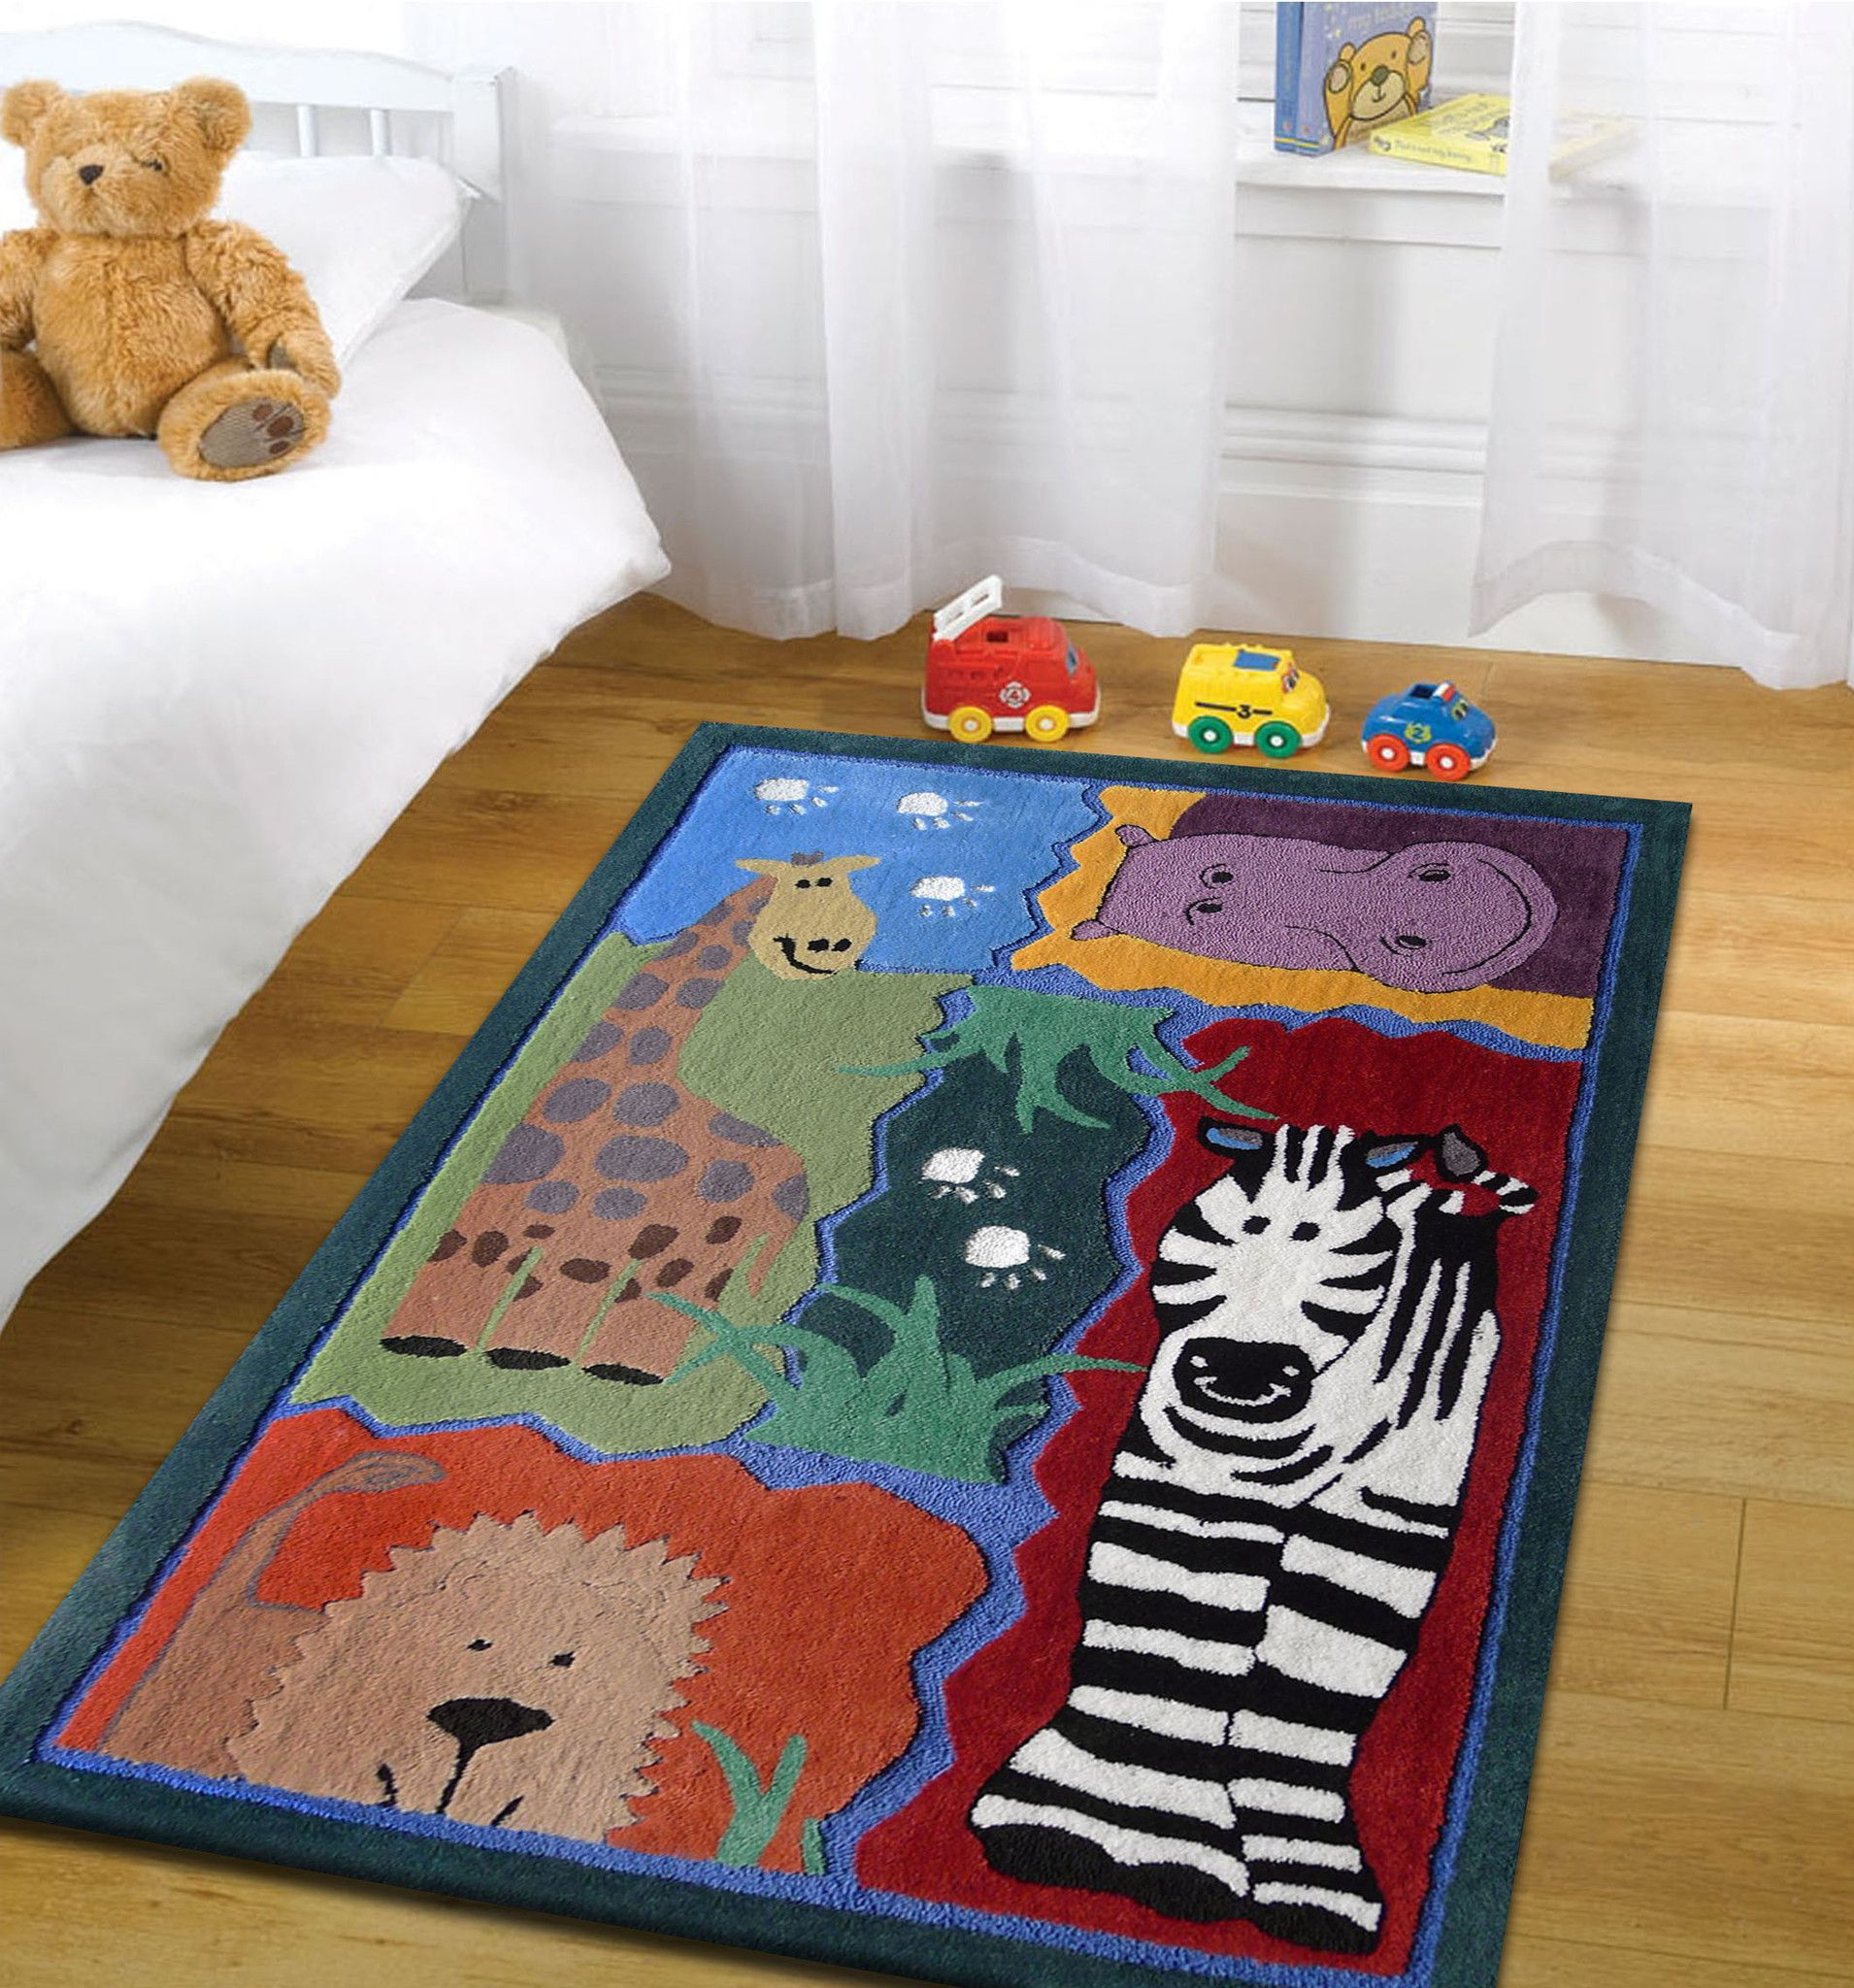 Kids 4x6 area rug with animals